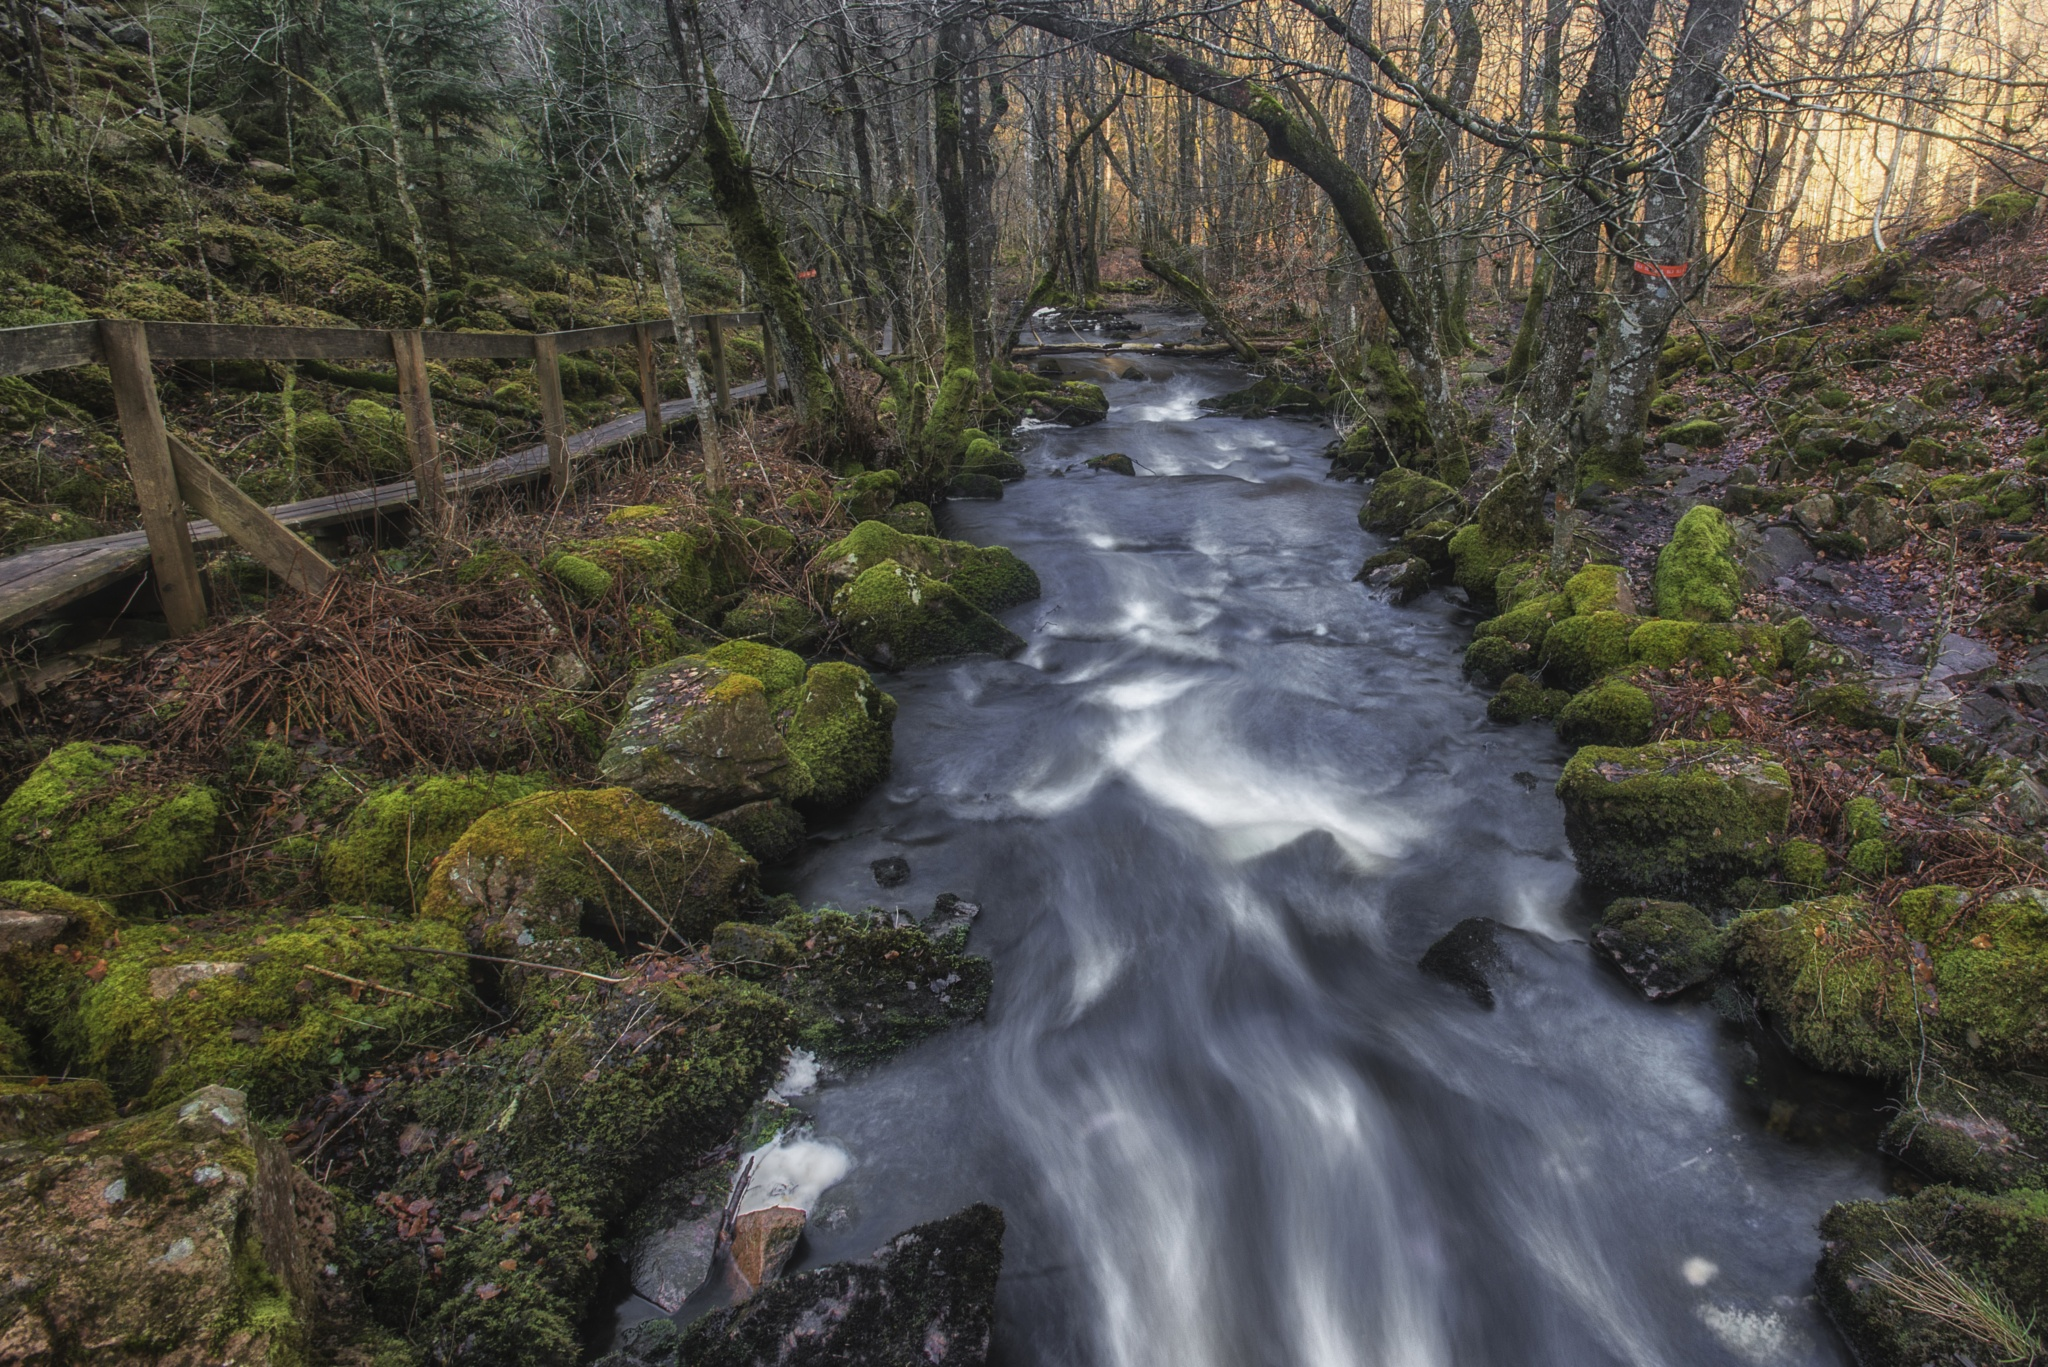 Babbling Brook by Leif Heering